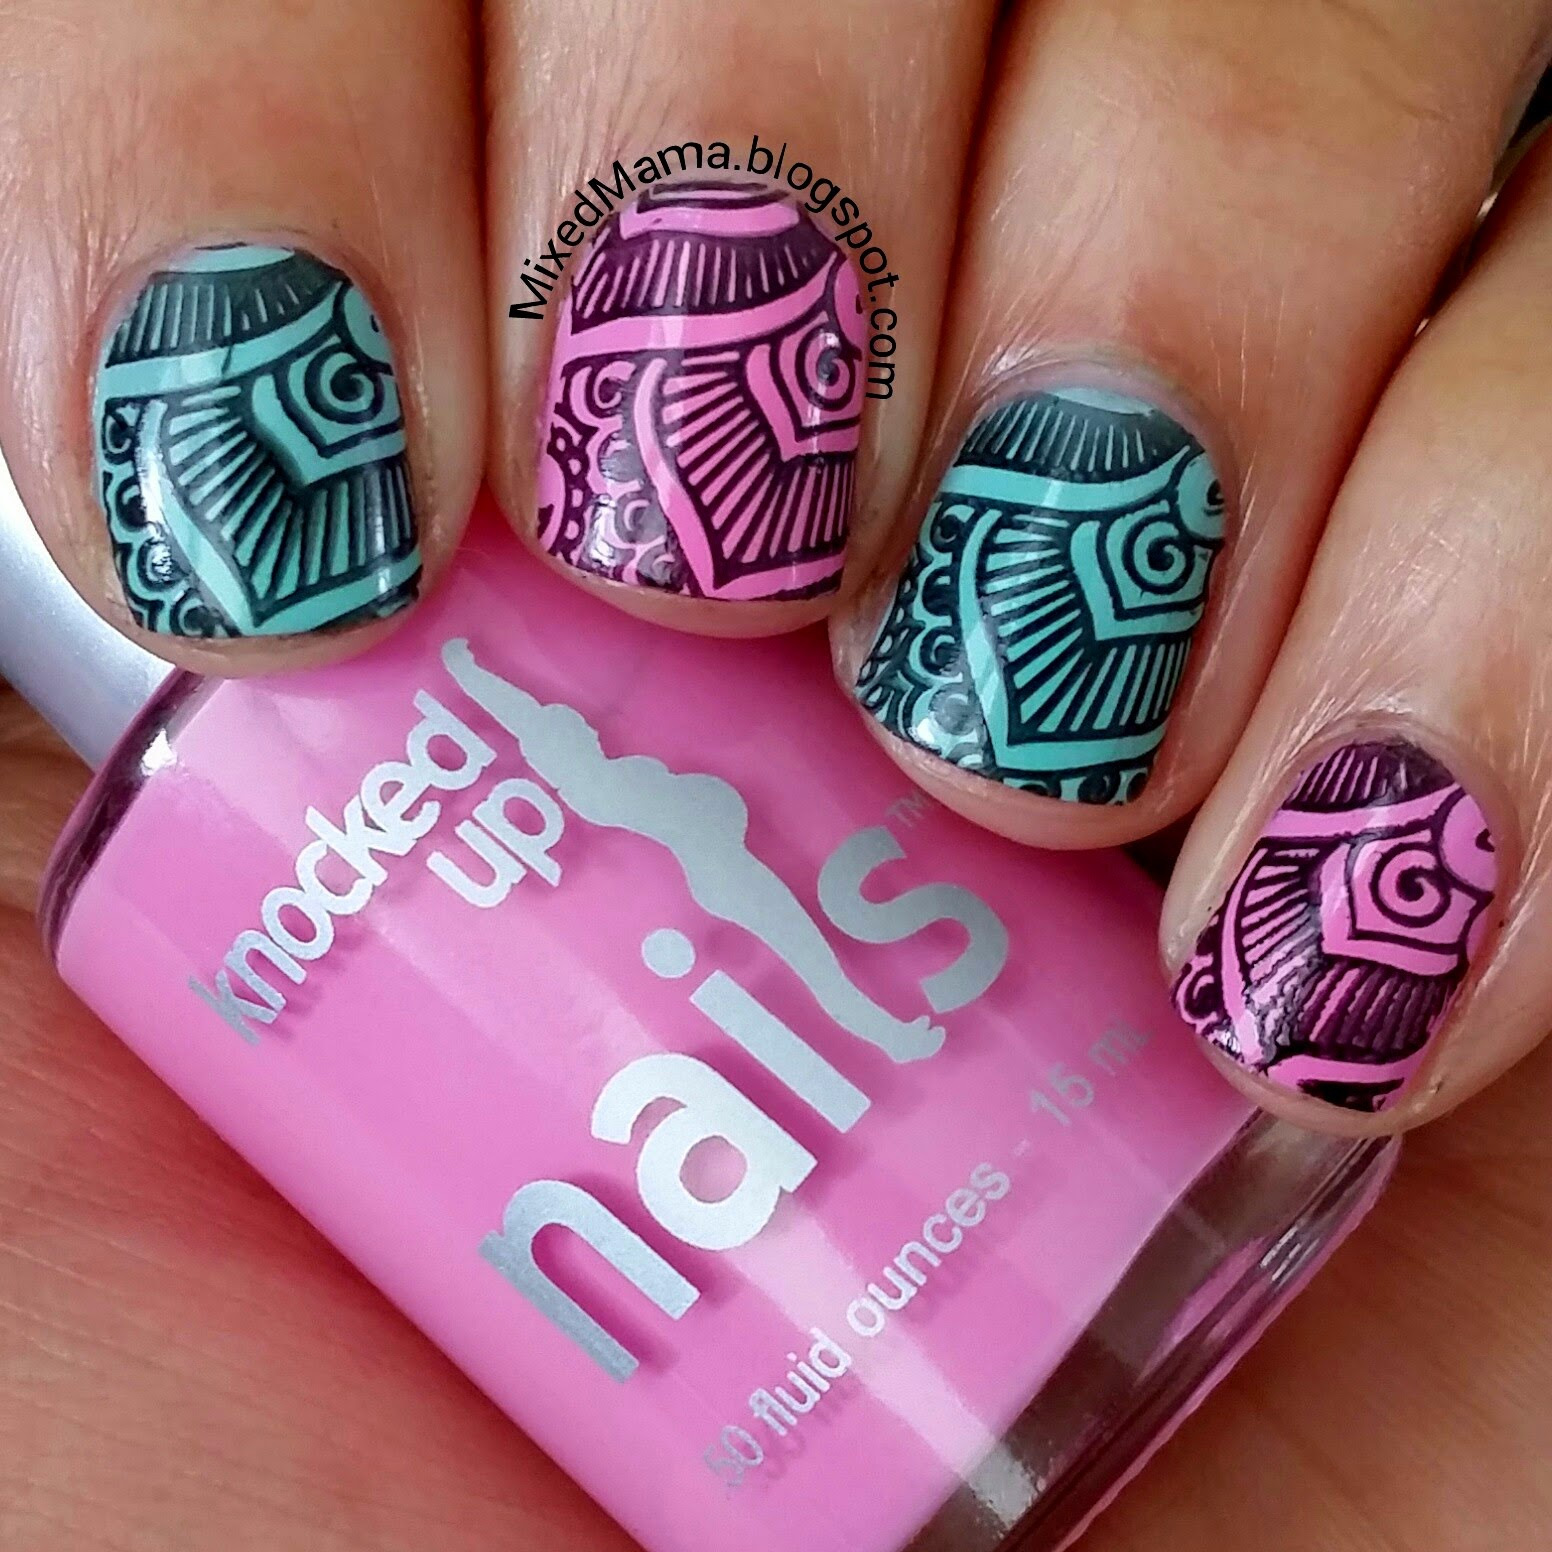 MixedMama: Knocked Up Nails Review